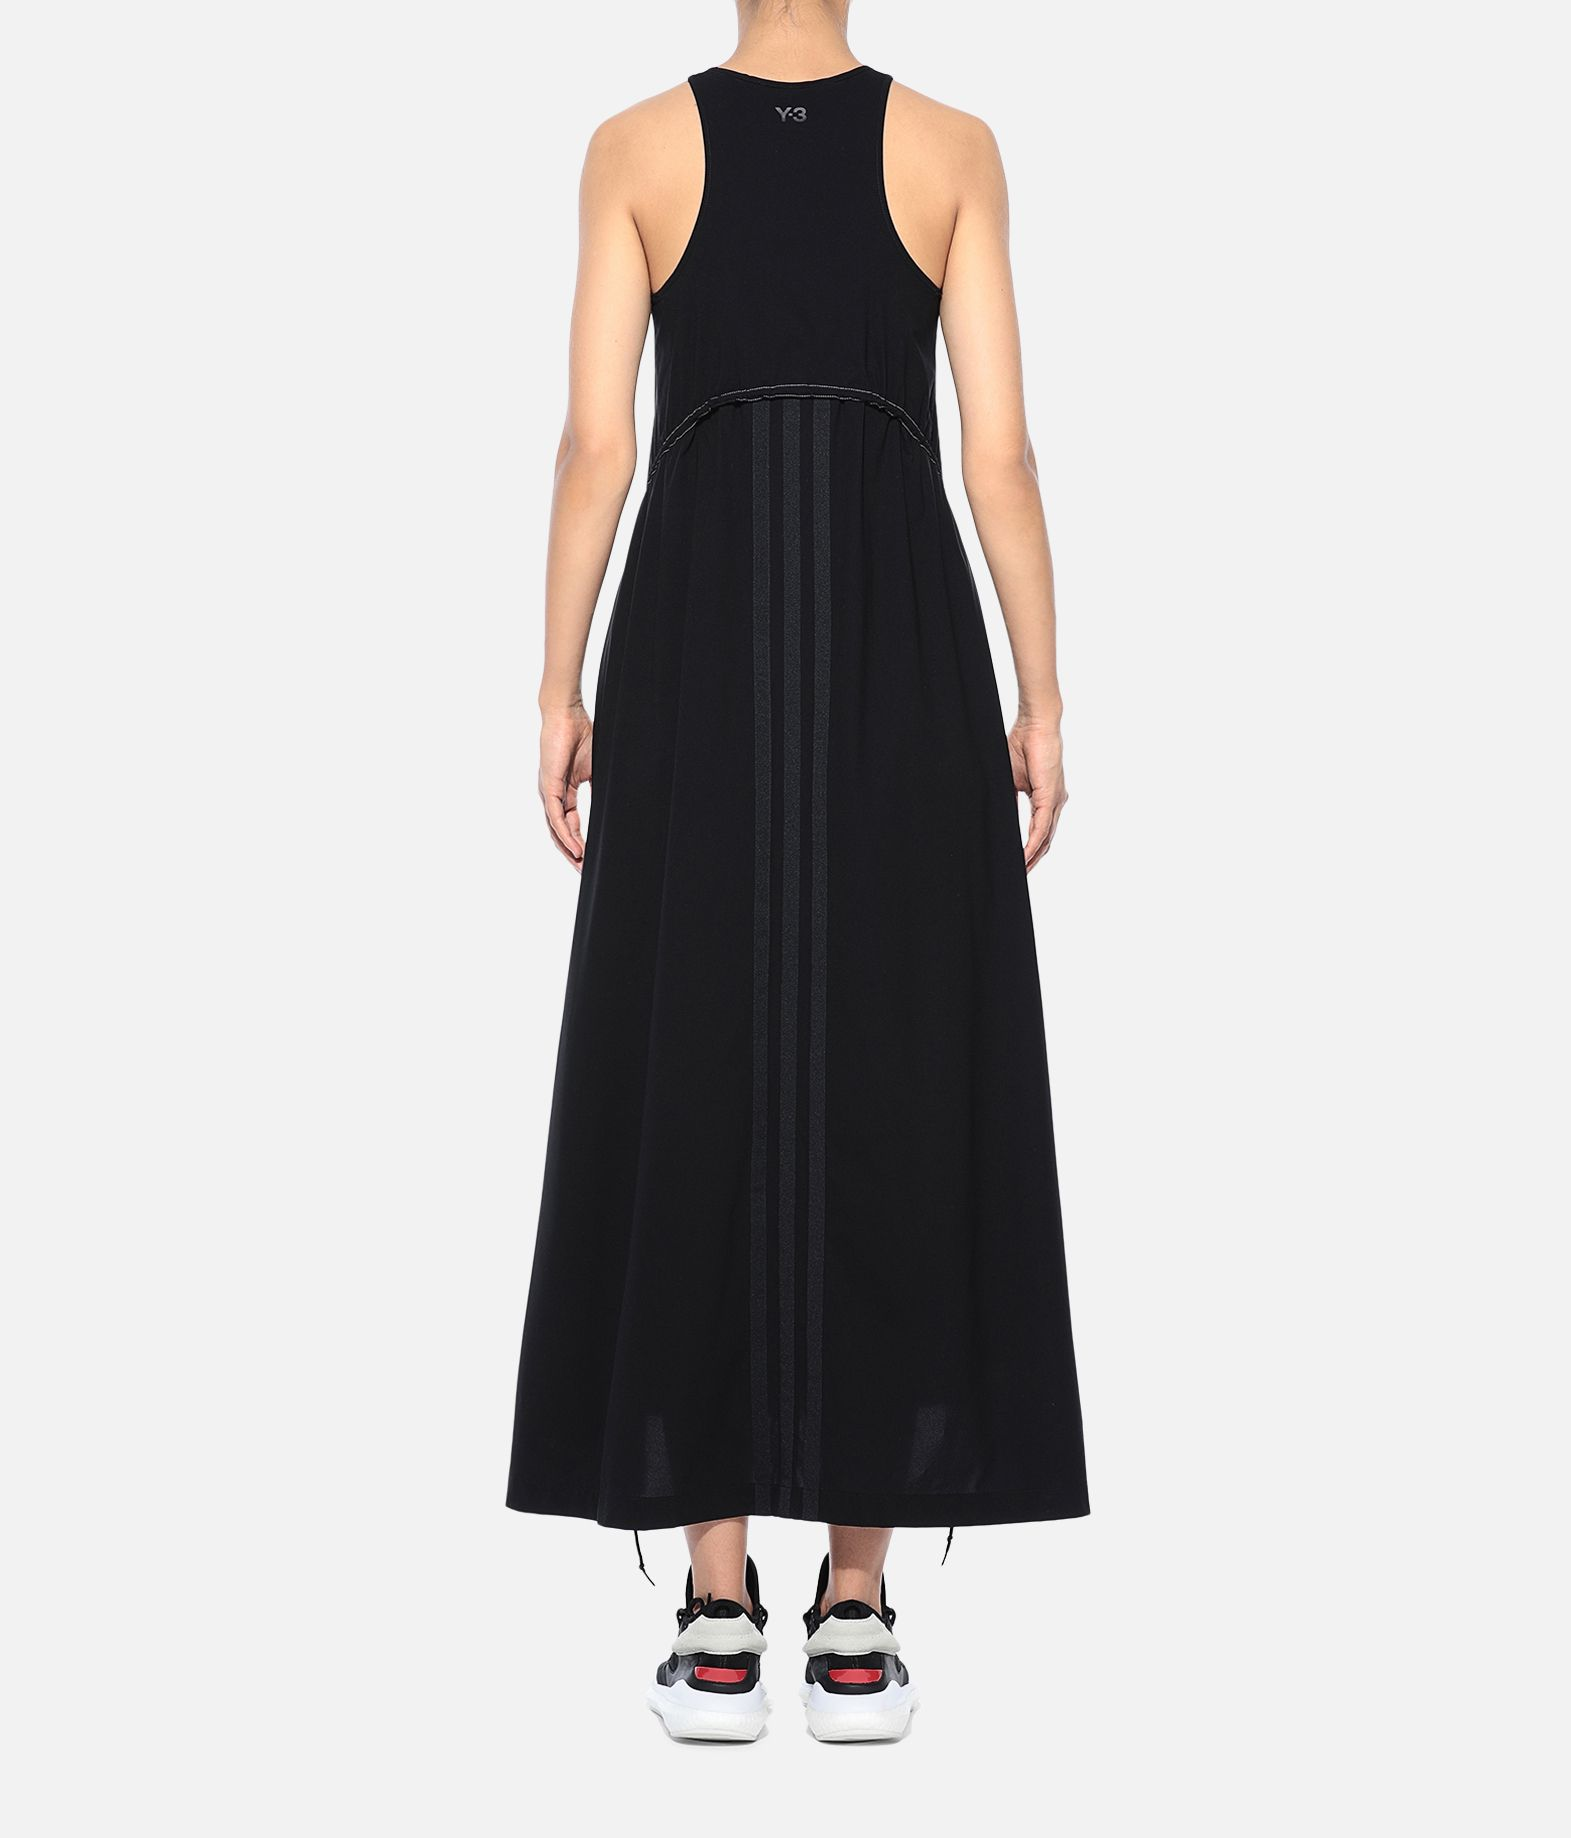 Y-3 Y-3 Light 3-Stripes Dress Dress Woman d